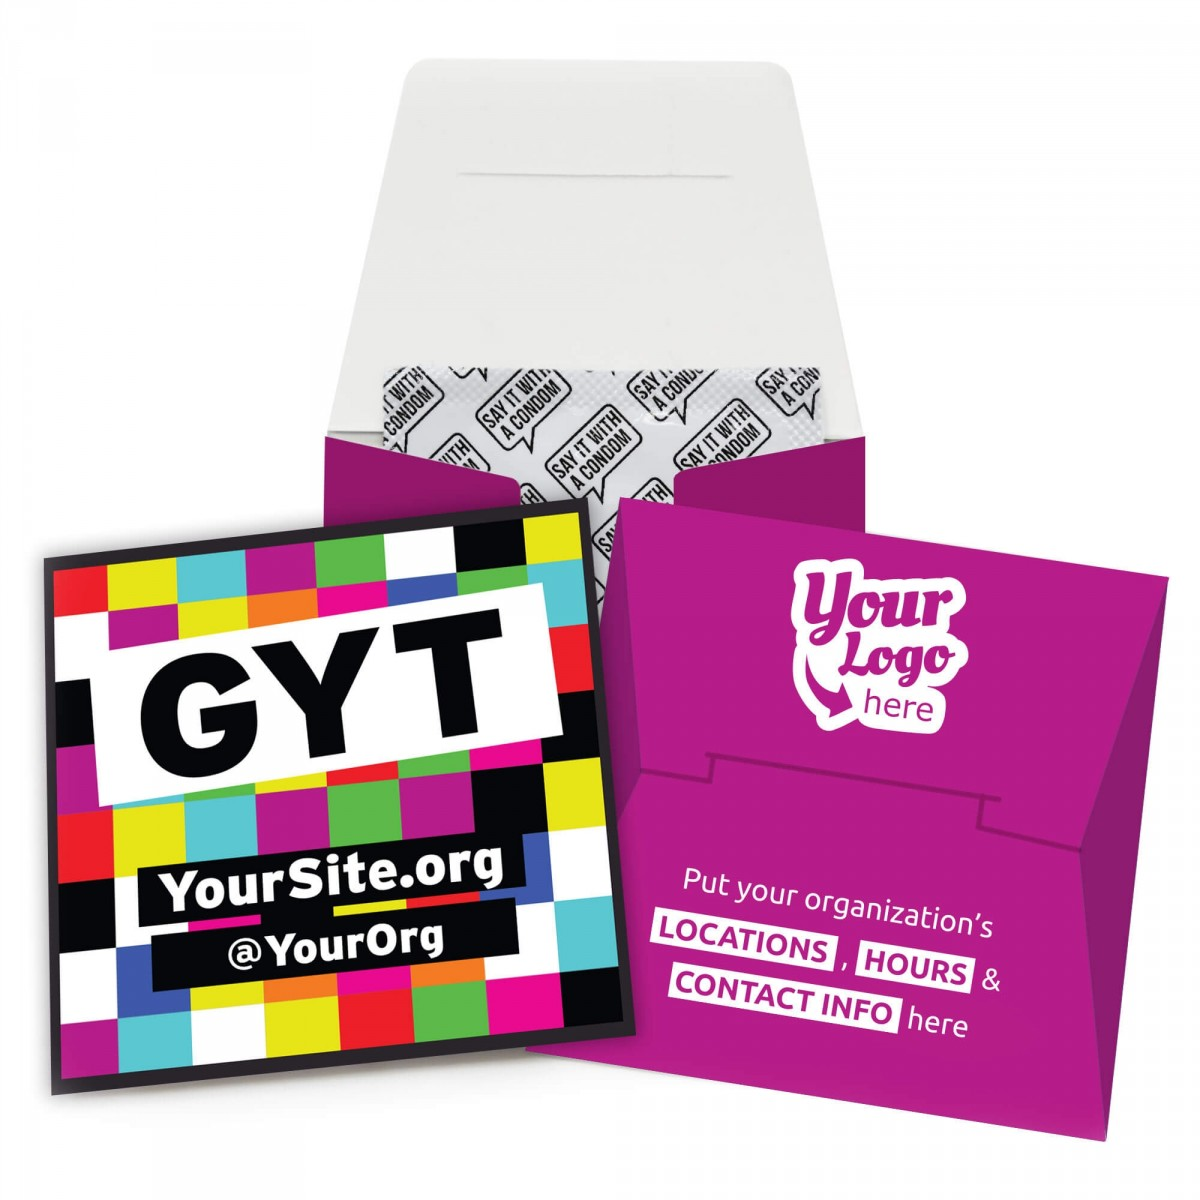 GYT Get Yourself Tested Condom Wallet